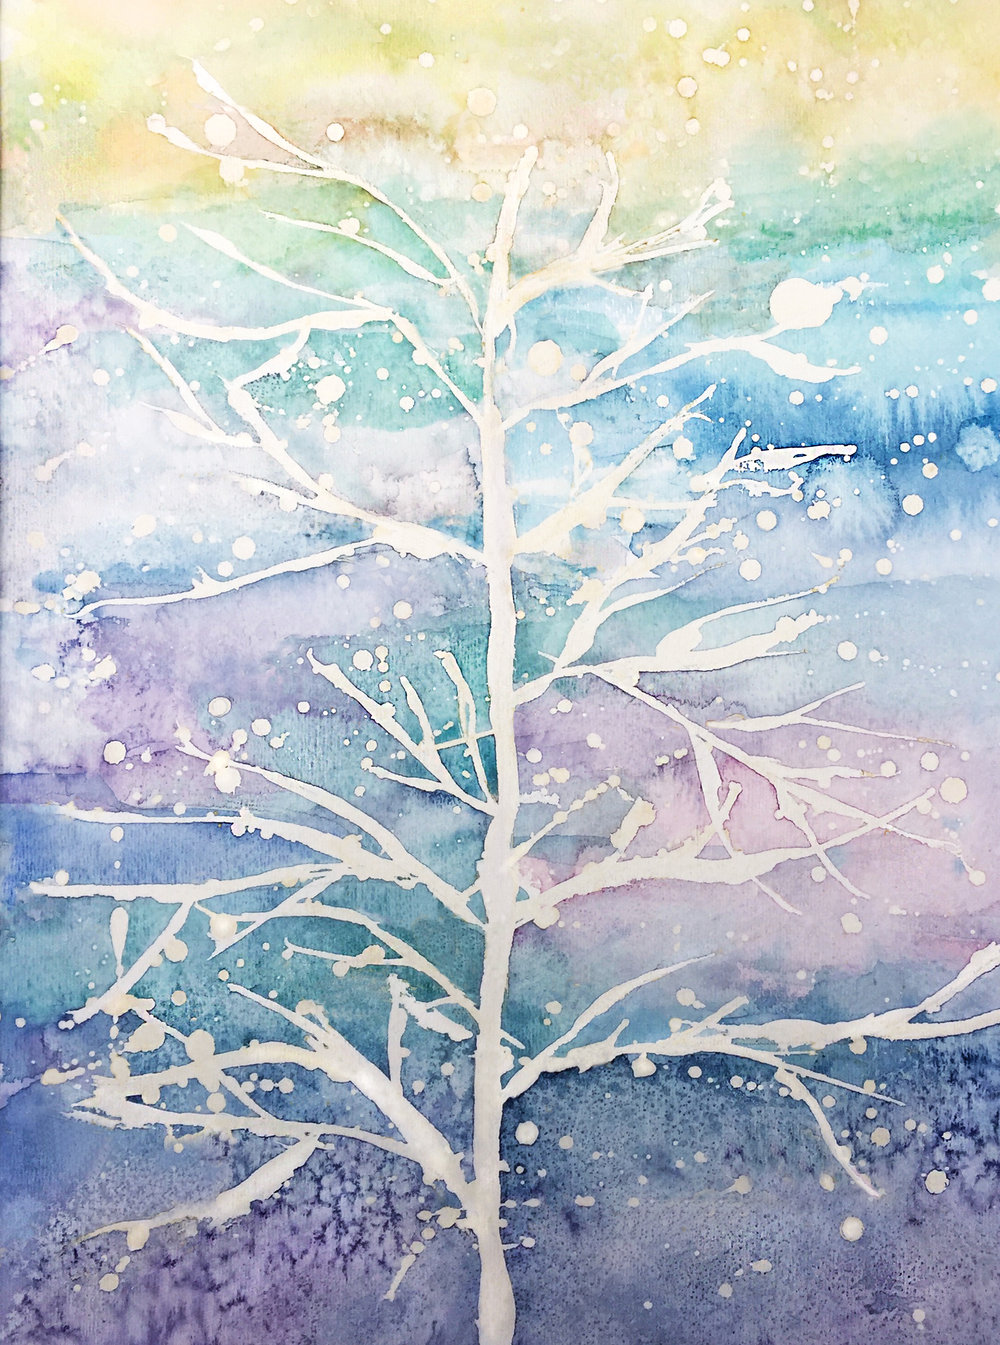 Watercolor + salt on paper